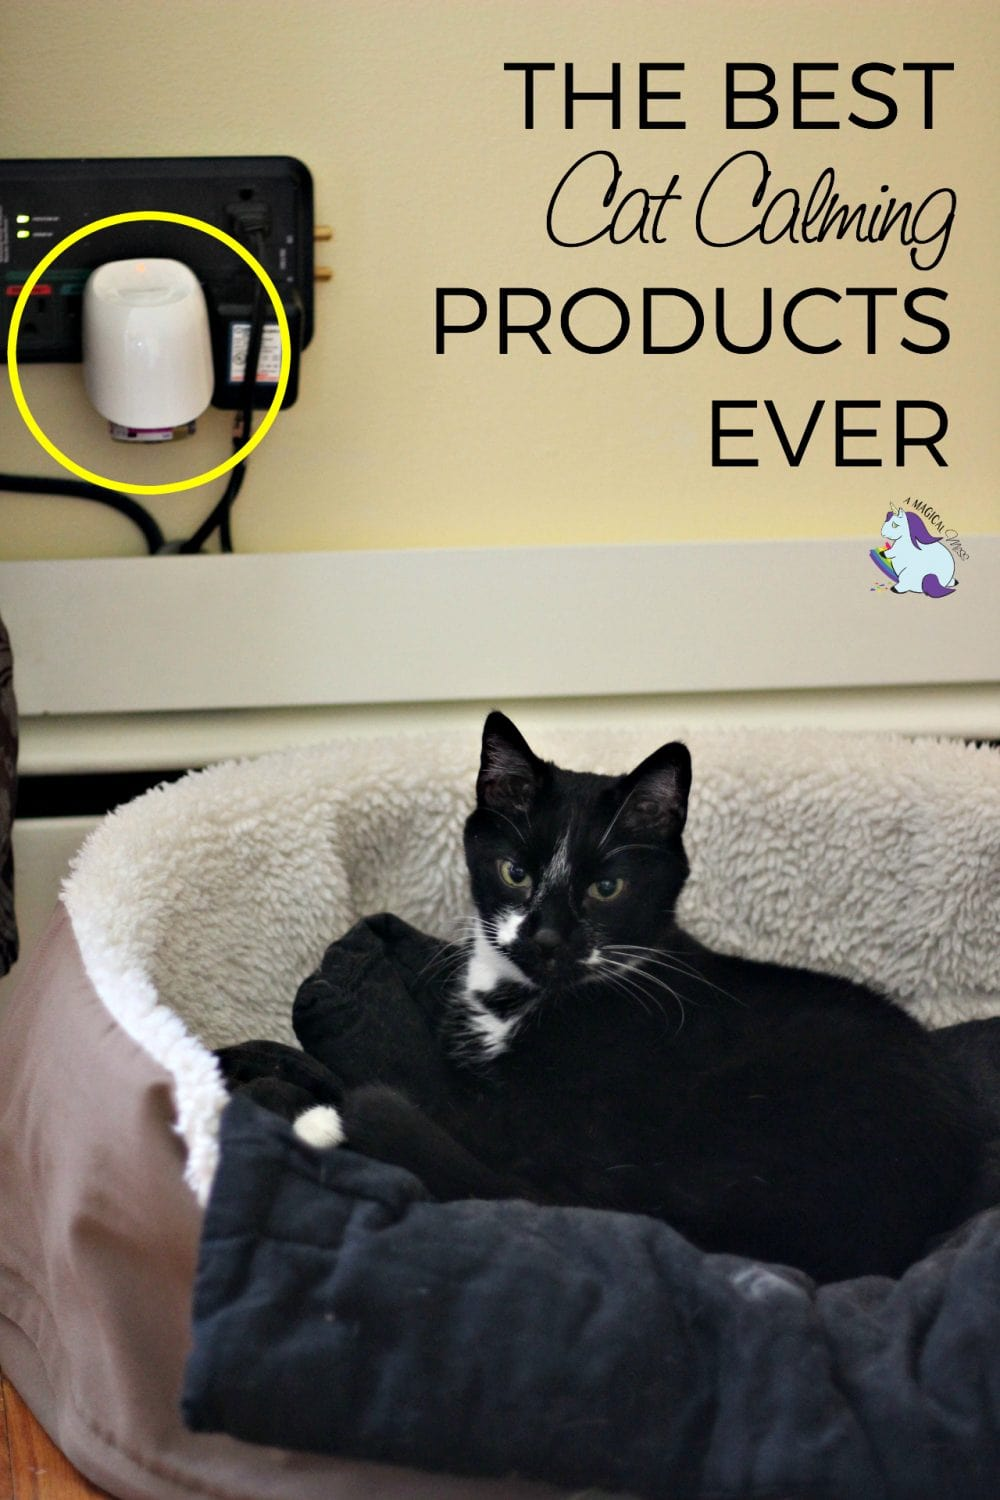 The Best Cat Calming Products Behind My Happy Cat